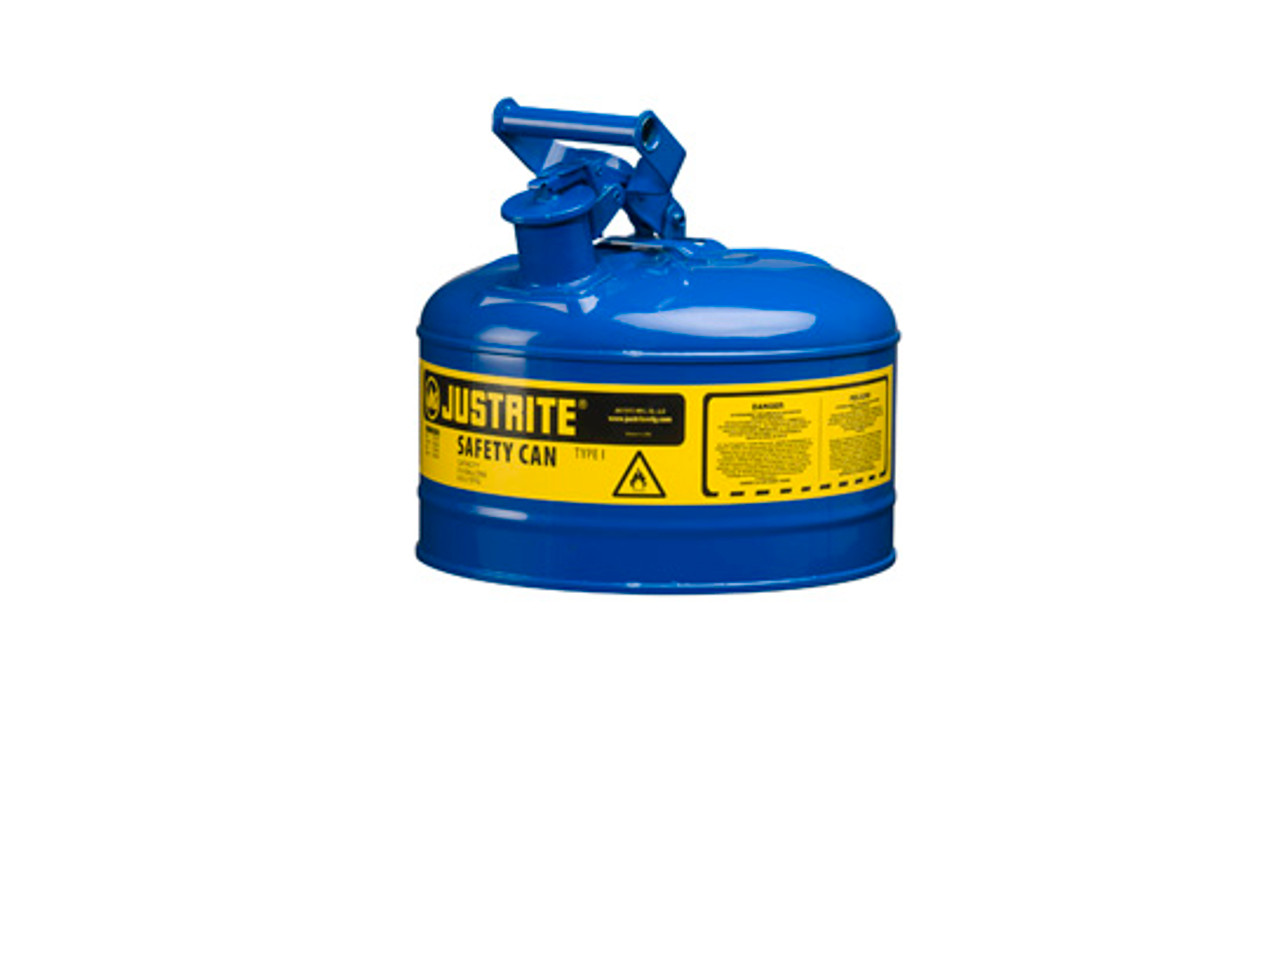 JUSTRITE 10218 Plunger Can,1//2 Gal.,Steel,Yellow